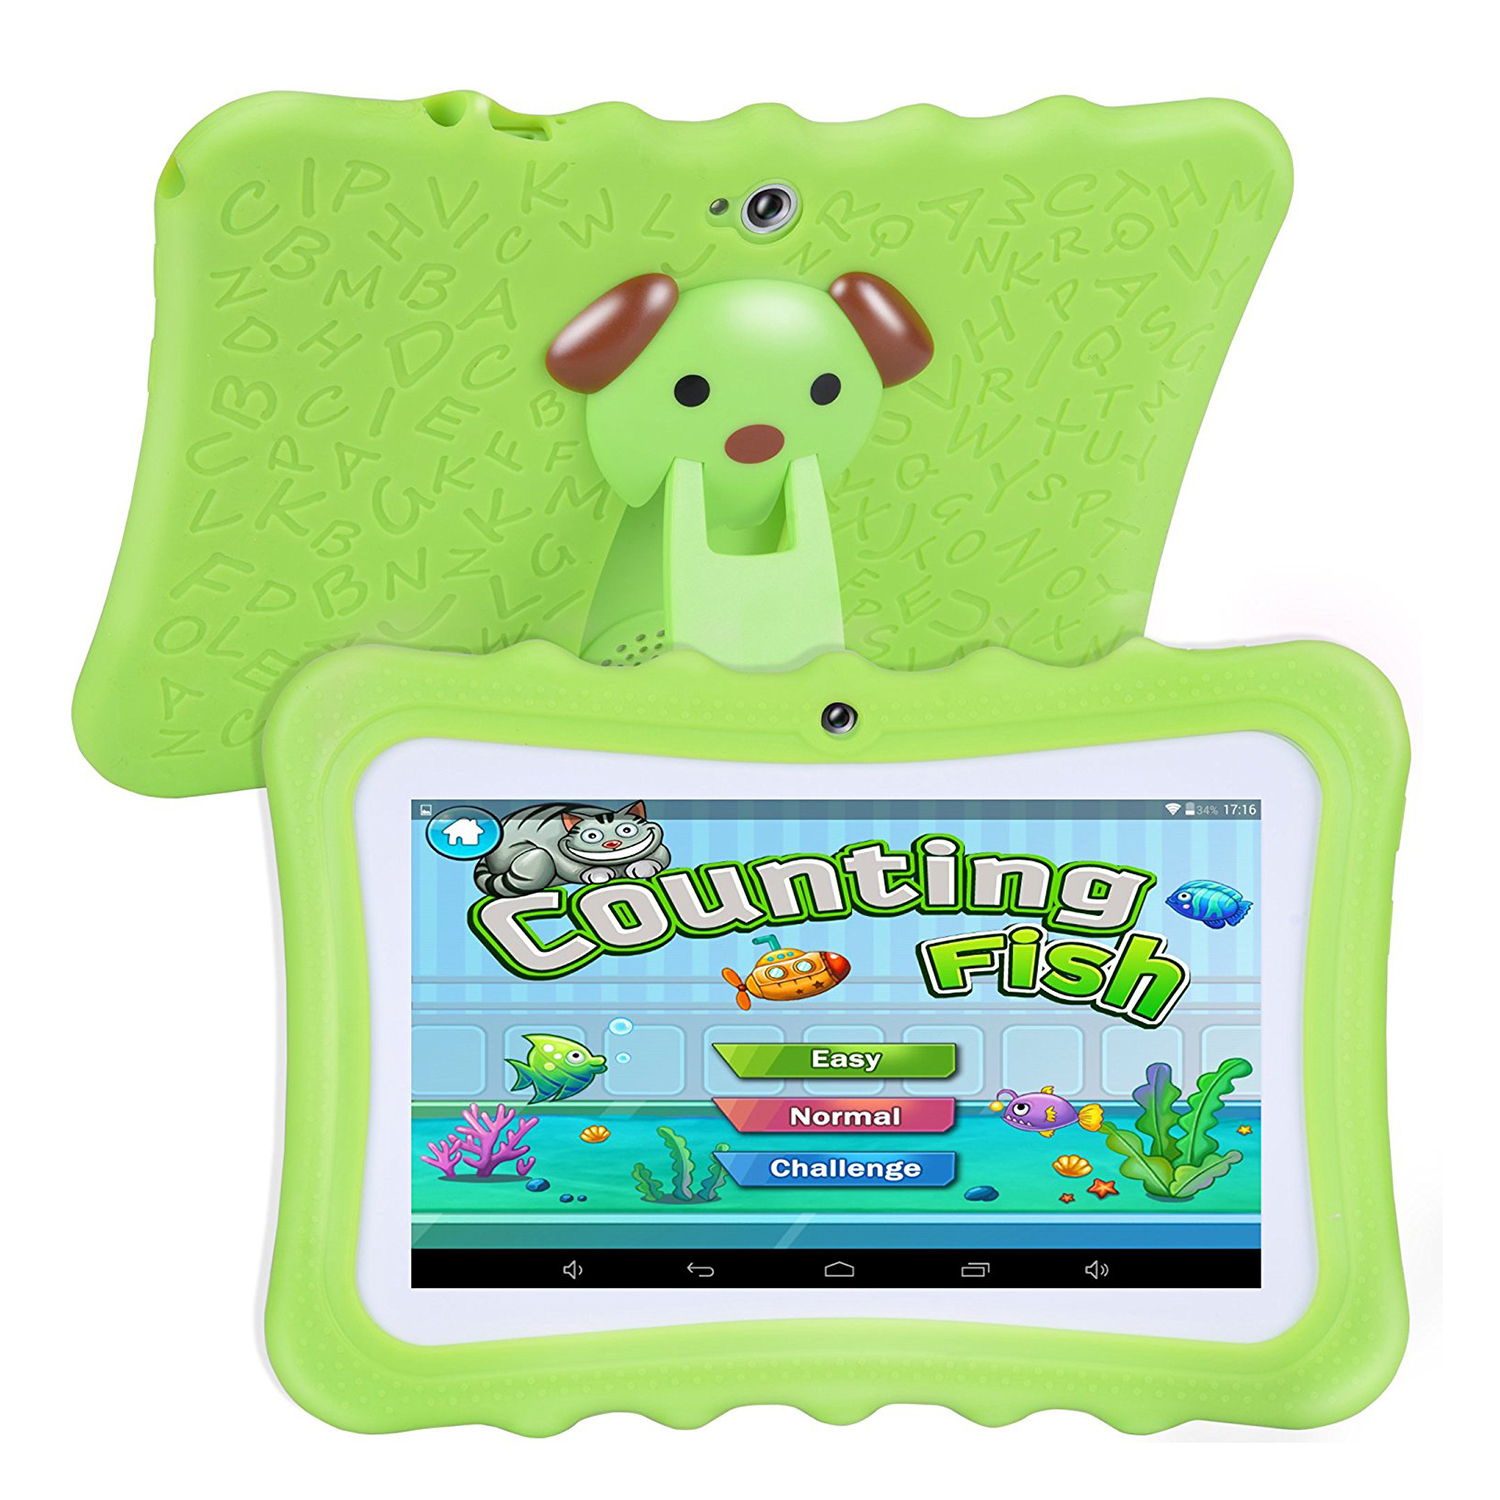 Childrens learning education machine Tablet best gift for Kids, 7inch HD with Silicone Case(Quad Core, 8GB, Wifi&bluetooth, FChildrens learning education machine Tablet best gift for Kids, 7inch HD with Silicone Case(Quad Core, 8GB, Wifi&bluetooth, F